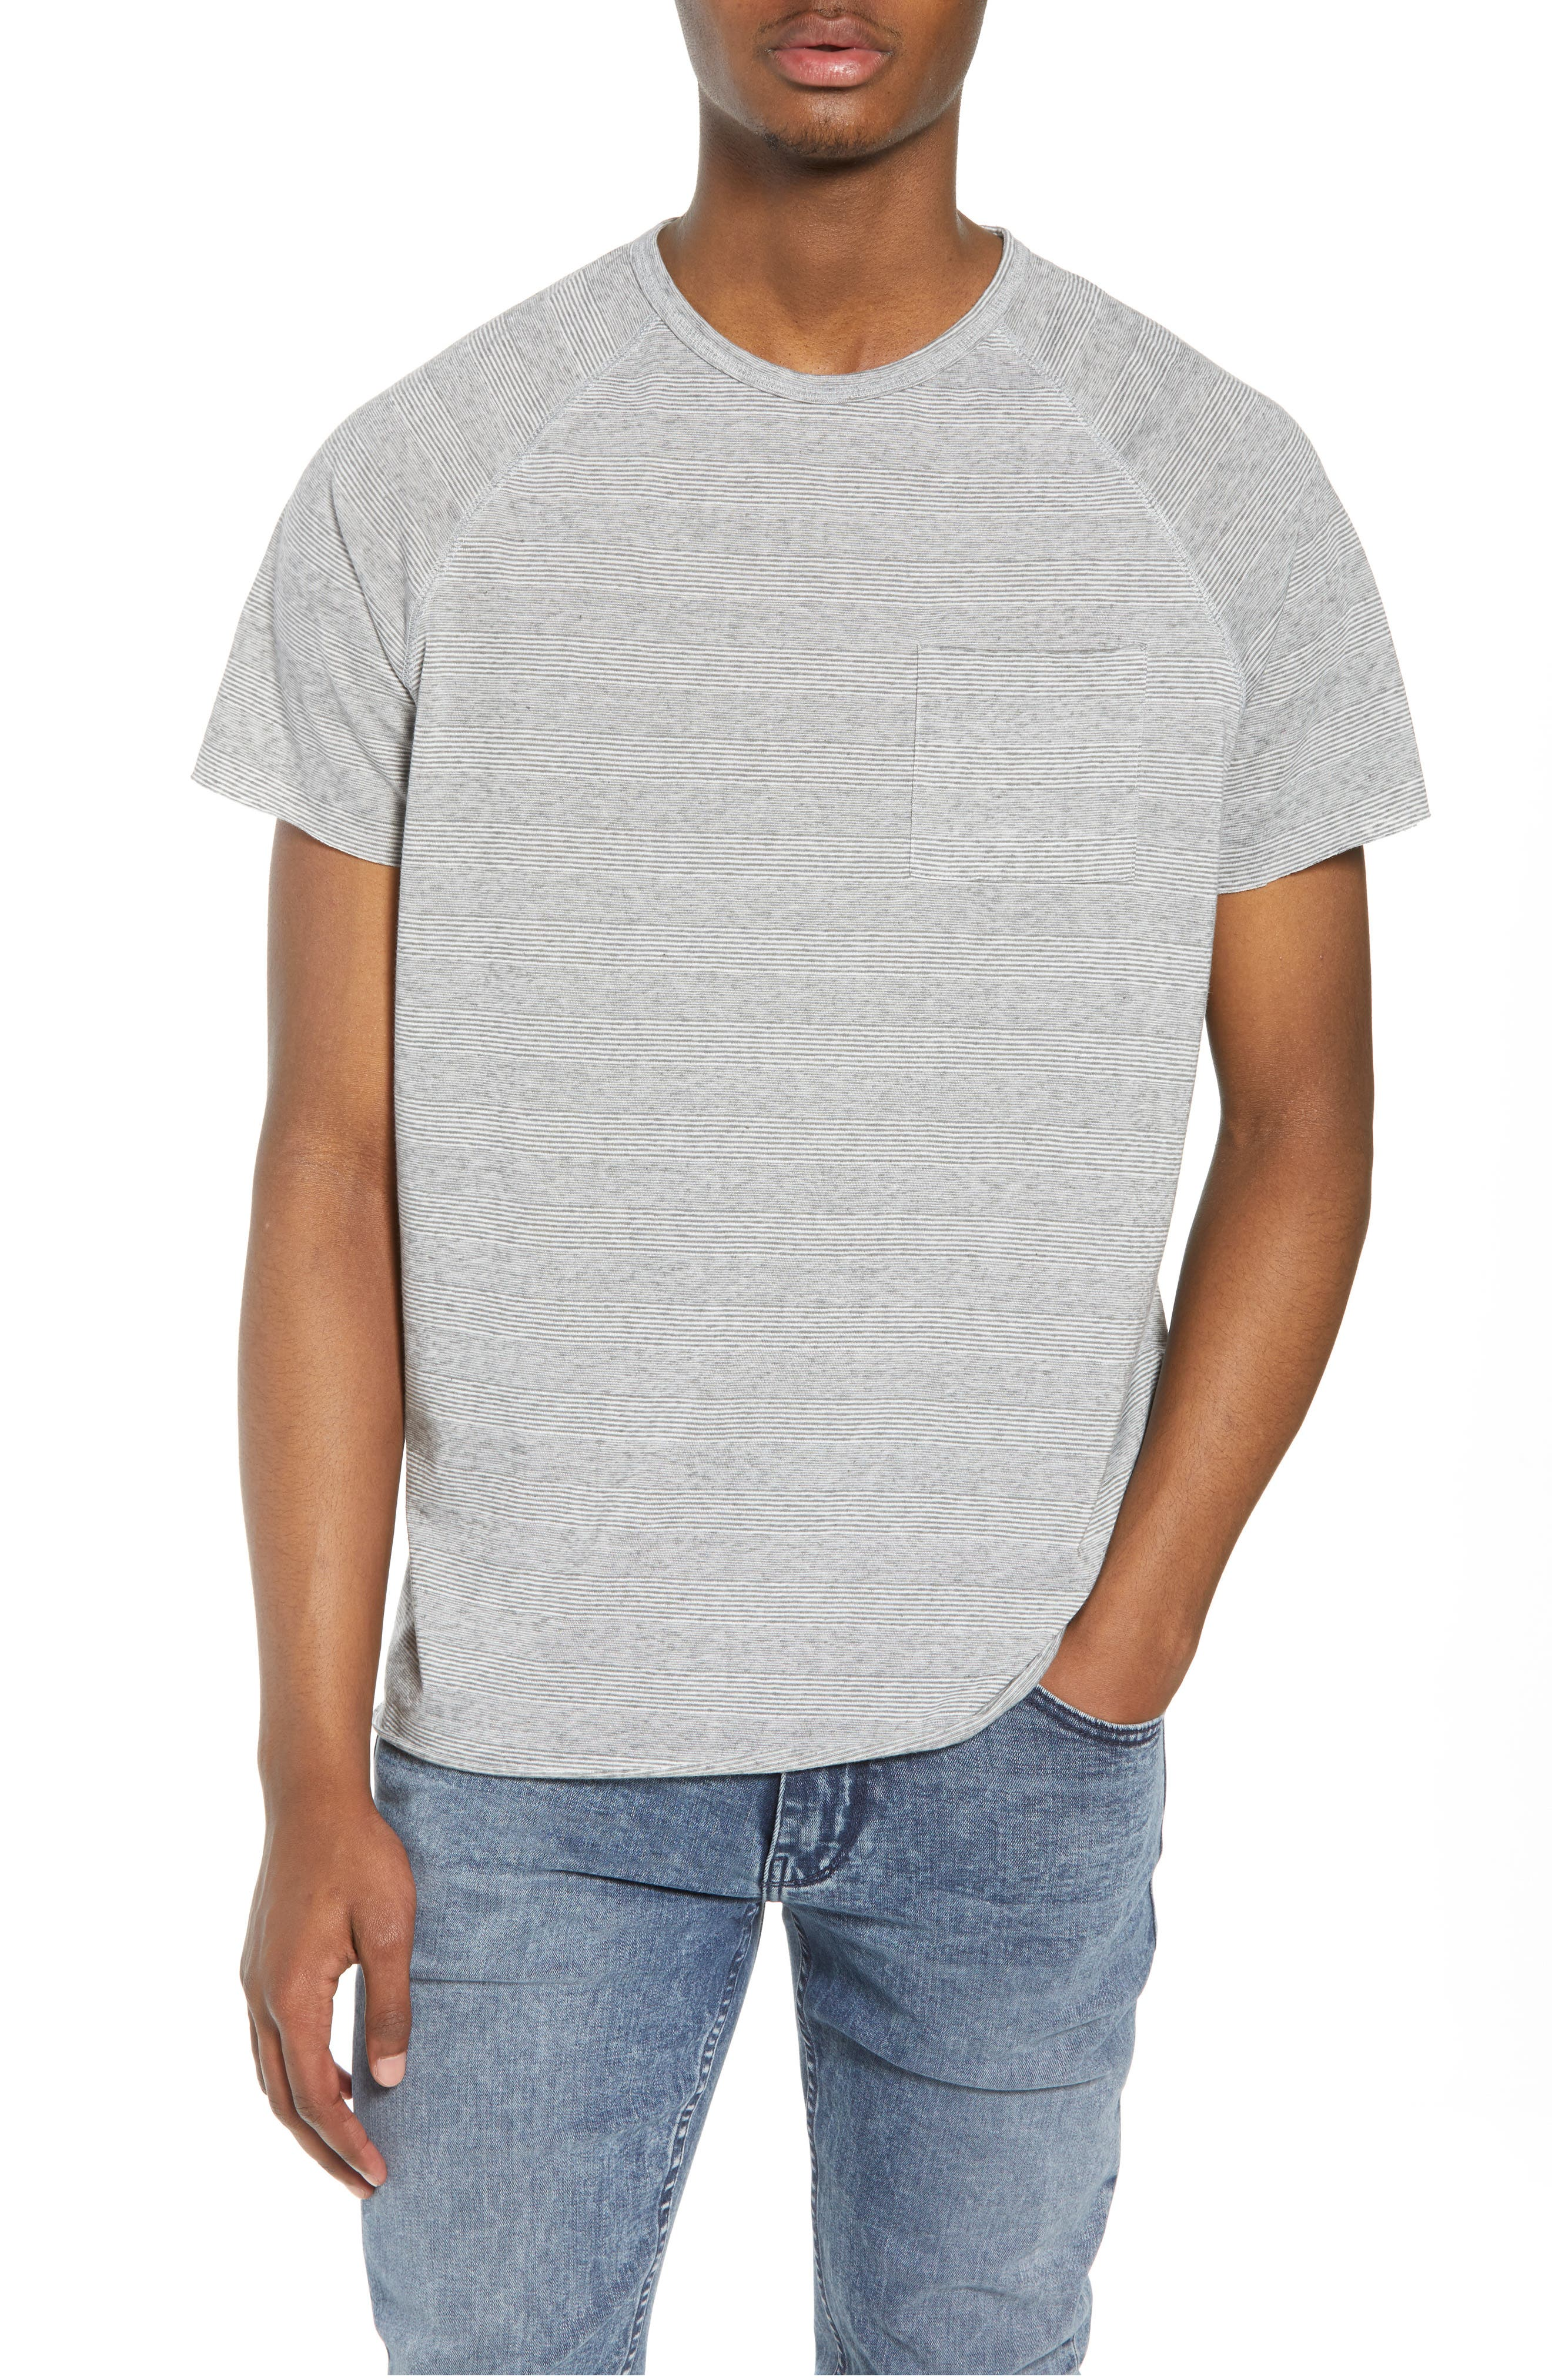 Stripe Pocket T-Shirt,                             Main thumbnail 1, color,                             Grey Heather Variegated Stripe